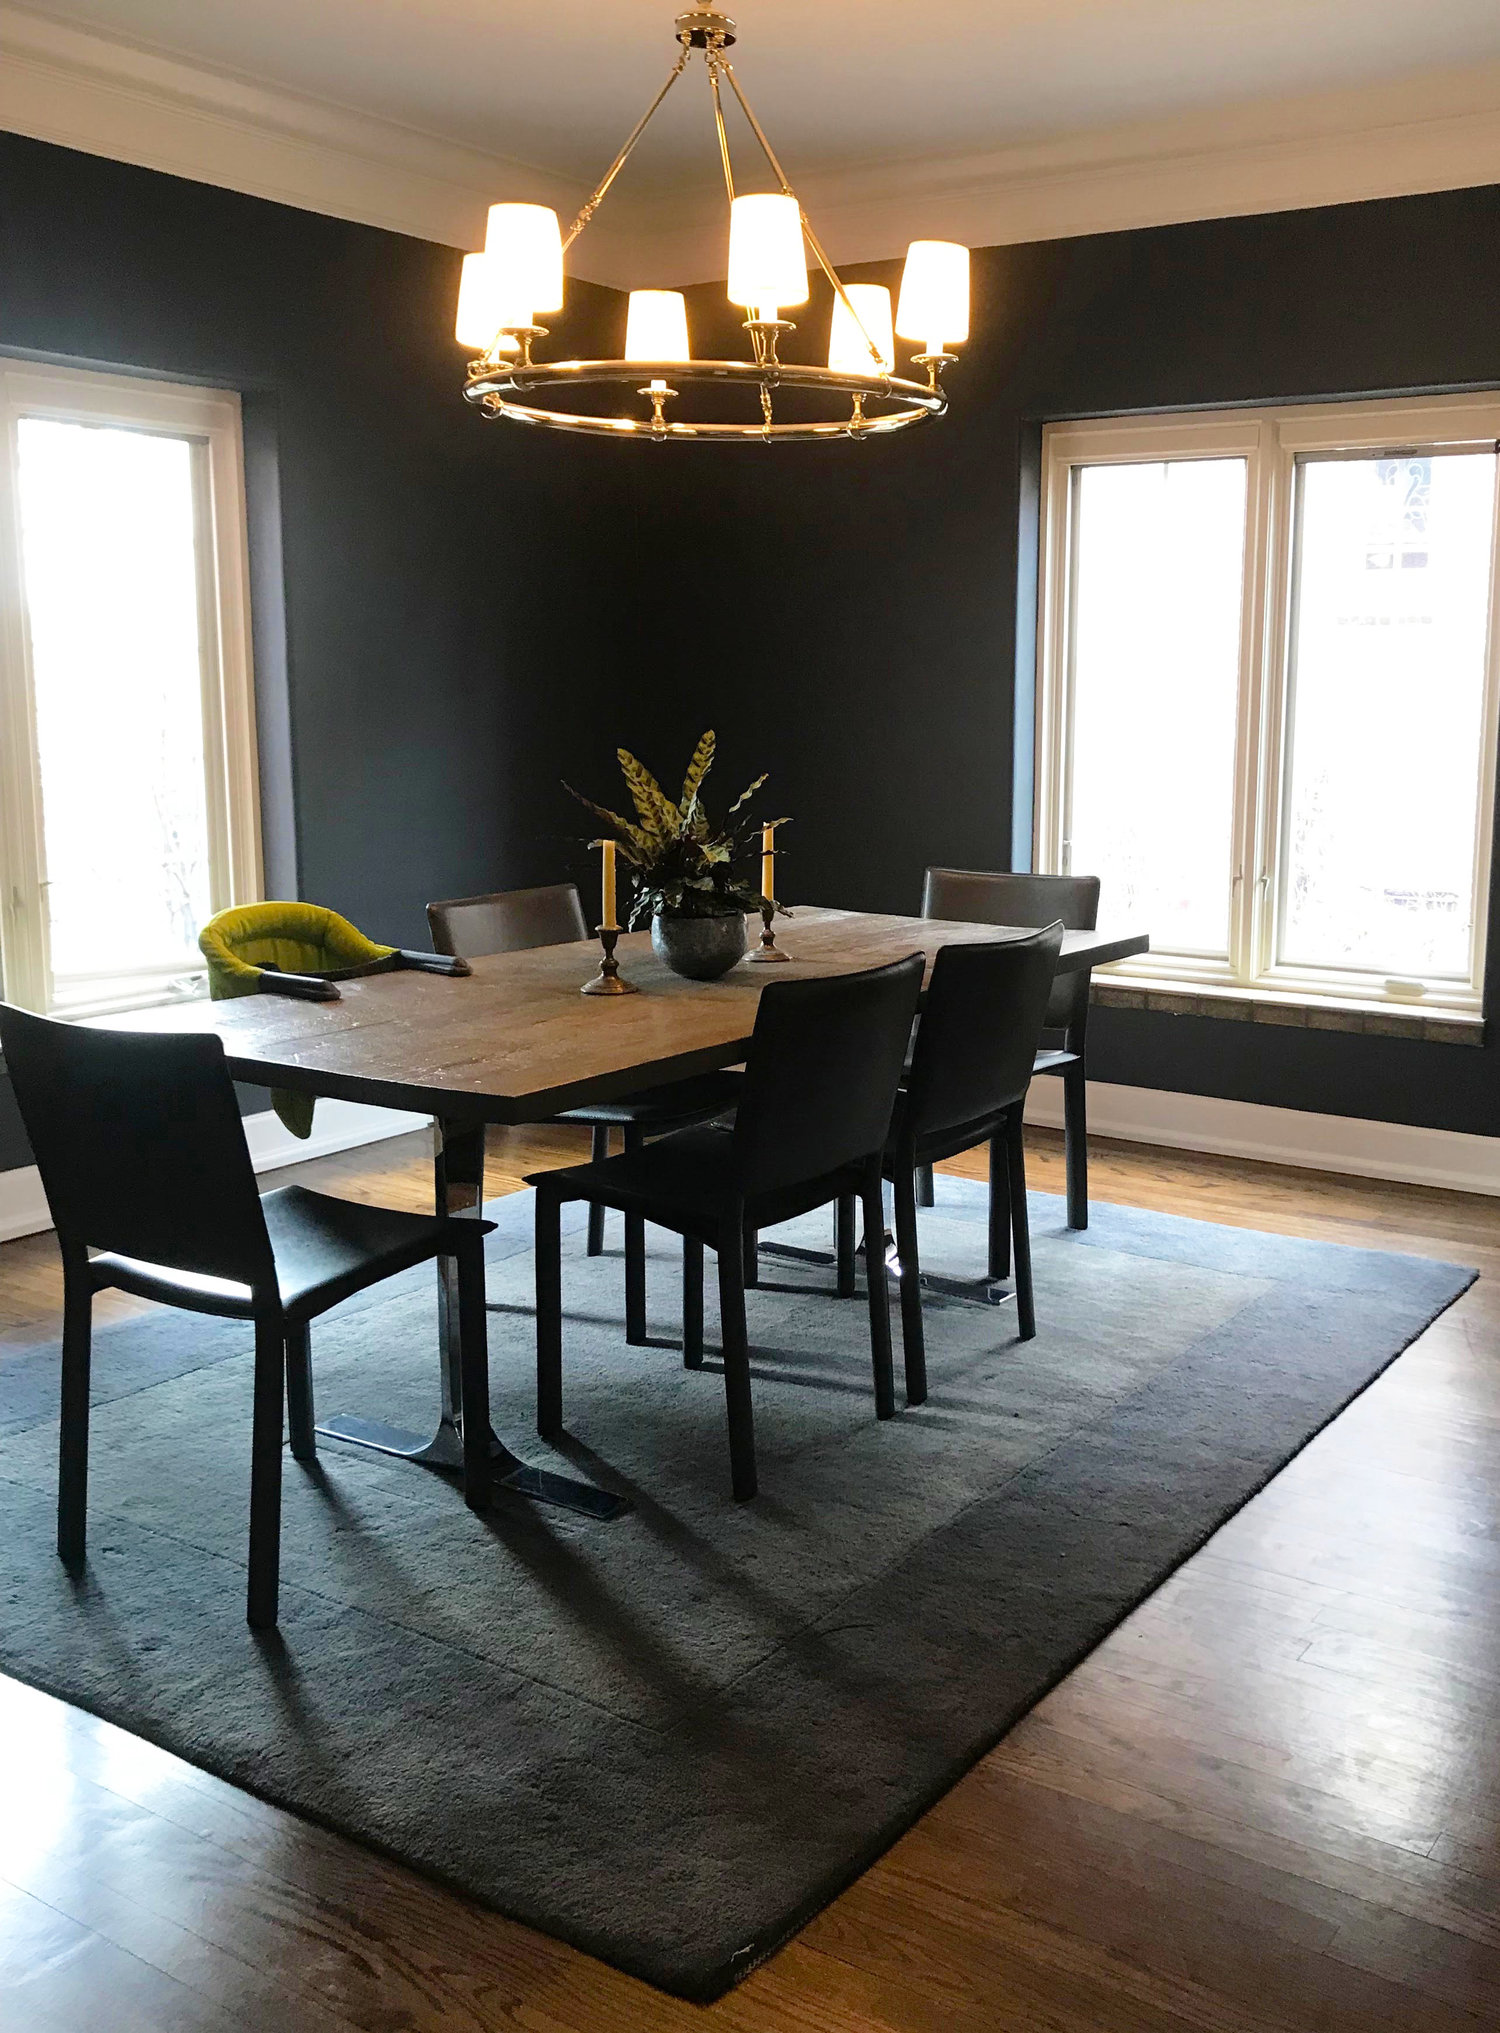 Outstanding How To Choose The Perfect Dining Table Size Revampt Goods Caraccident5 Cool Chair Designs And Ideas Caraccident5Info